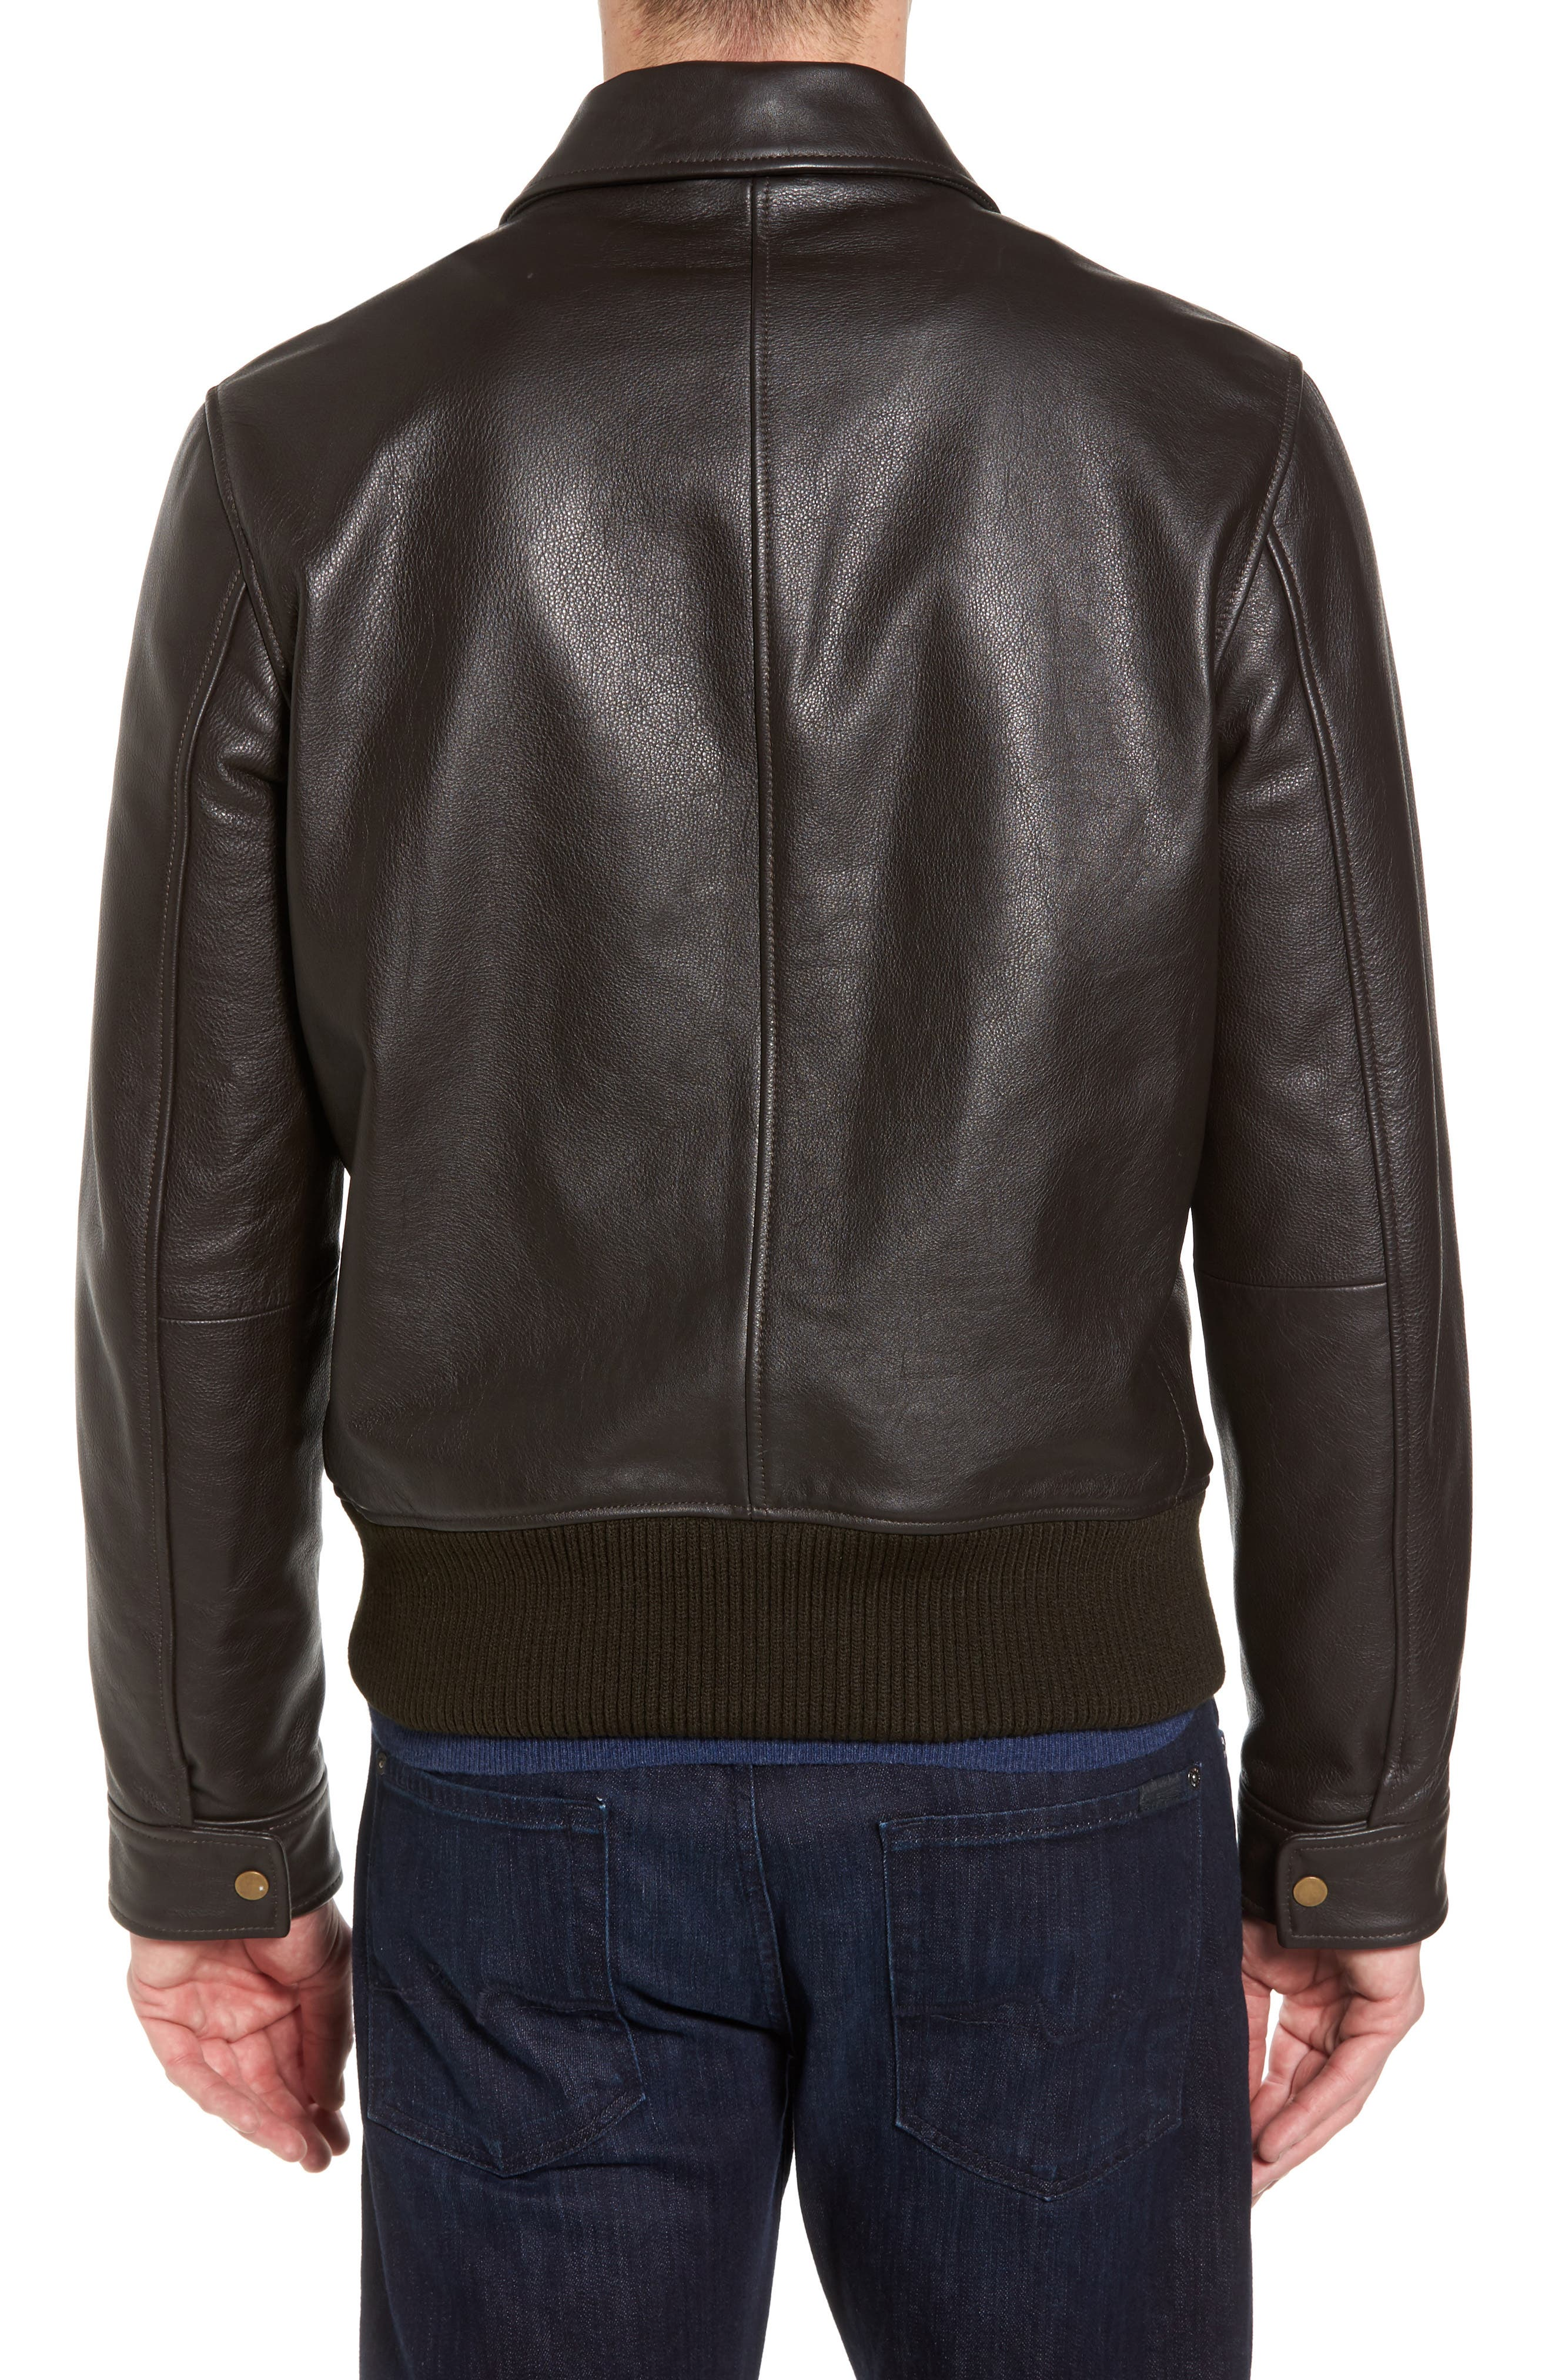 Year Round Leather Jacket,                             Alternate thumbnail 2, color,                             Espresso Brown